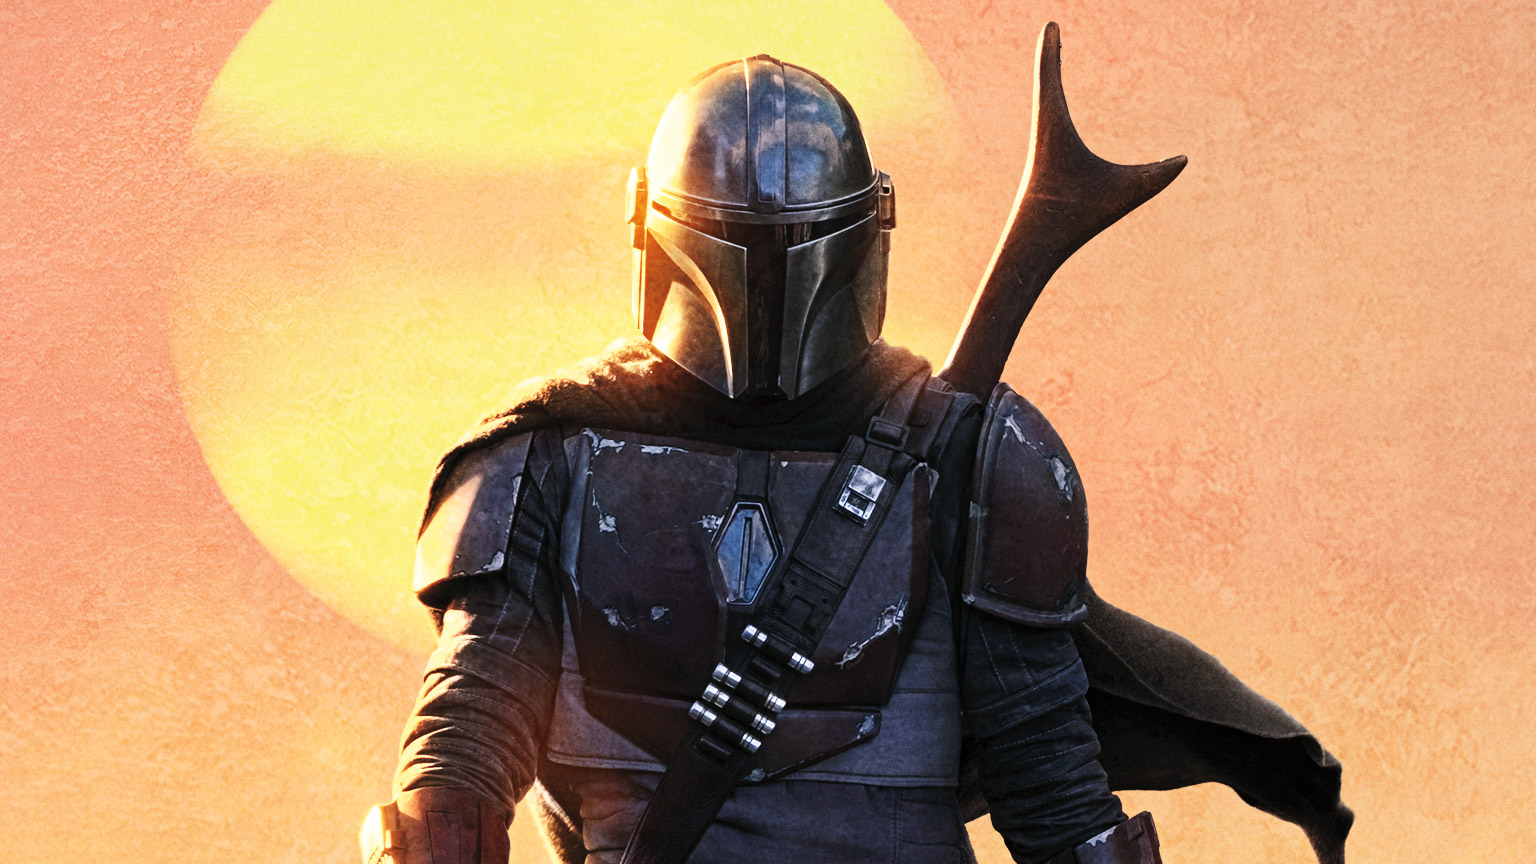 The Mandalorian Season 2 Release Date and Cast